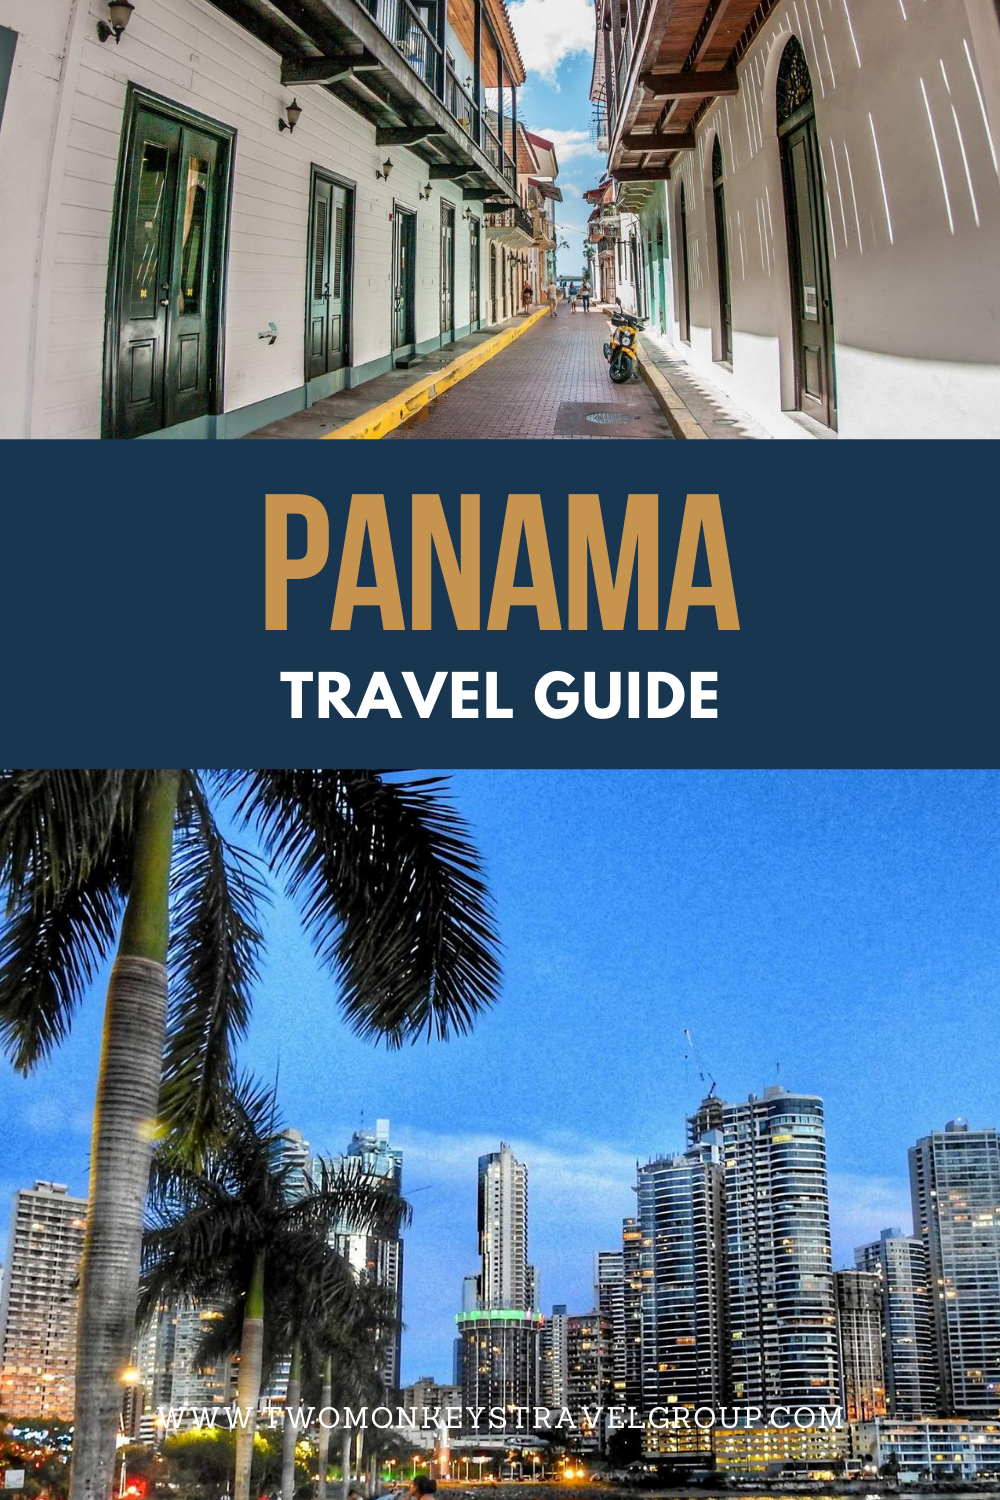 Travel Guide to Panama – How, Where & Frequently Asked Questions